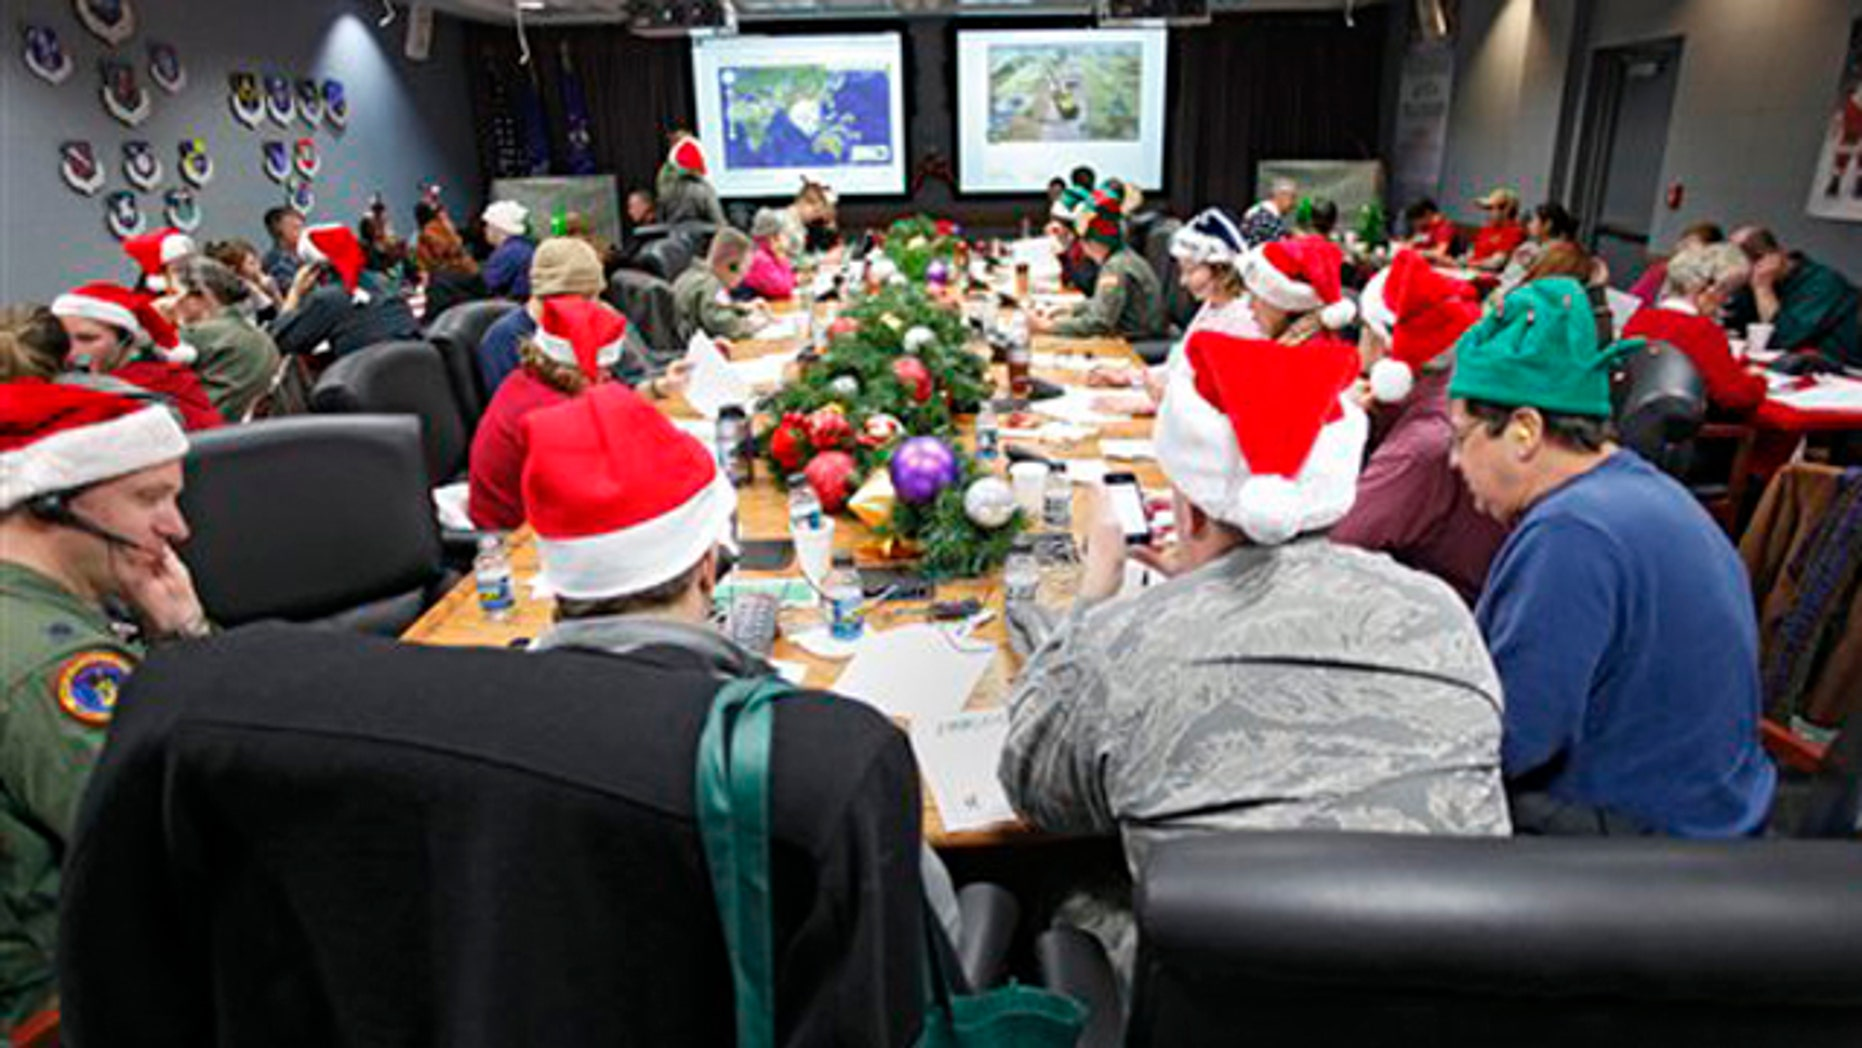 FILE - In this Dec. 24, 2010 file photo, volunteers take phone calls and answer emails at the Santa Tracking Operations Center at Peterson Air Force Base near Colorado Springs, Colo. Santa is already piling up monster numbers on social networking sites this season, so the volunteer Santa-trackers at NORAD are bracing for tens of thousands of calls and emails when their operations center goes live on Christmas Eve. (AP Photo/Ed Andrieski, File)